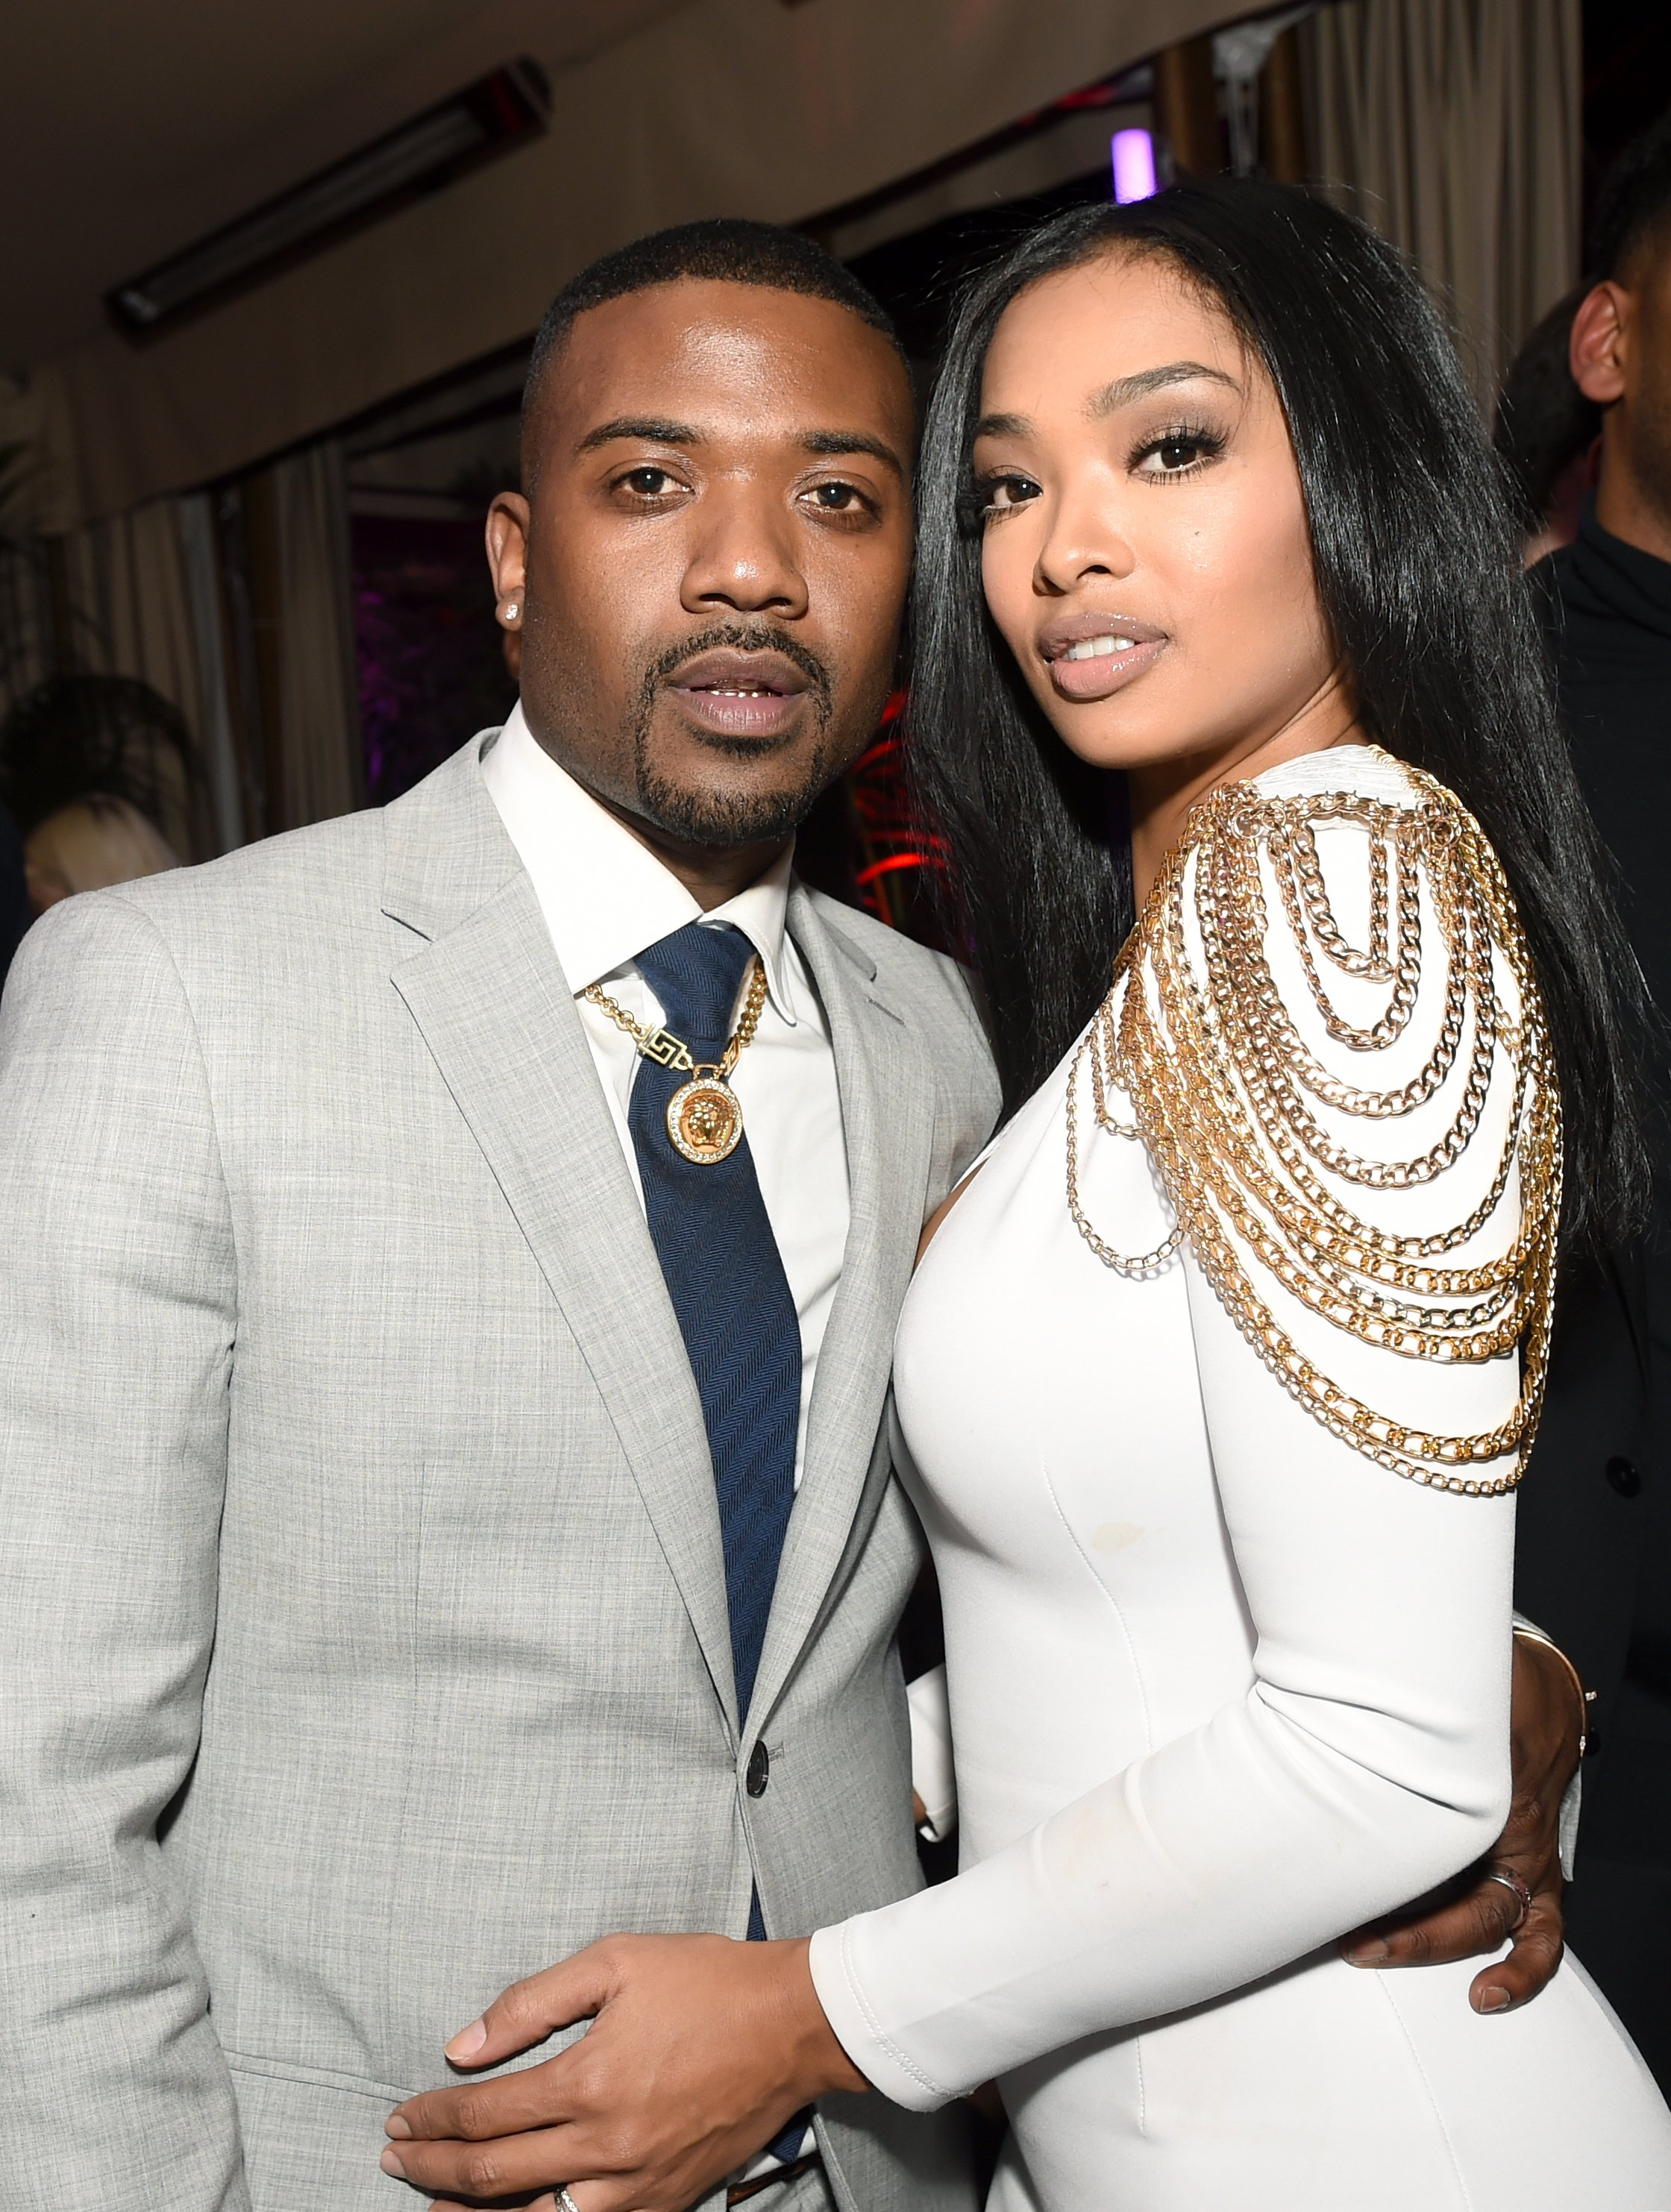 Ray J and Princess Love at a Grammy event in February 2017. | Photo: Getty Images